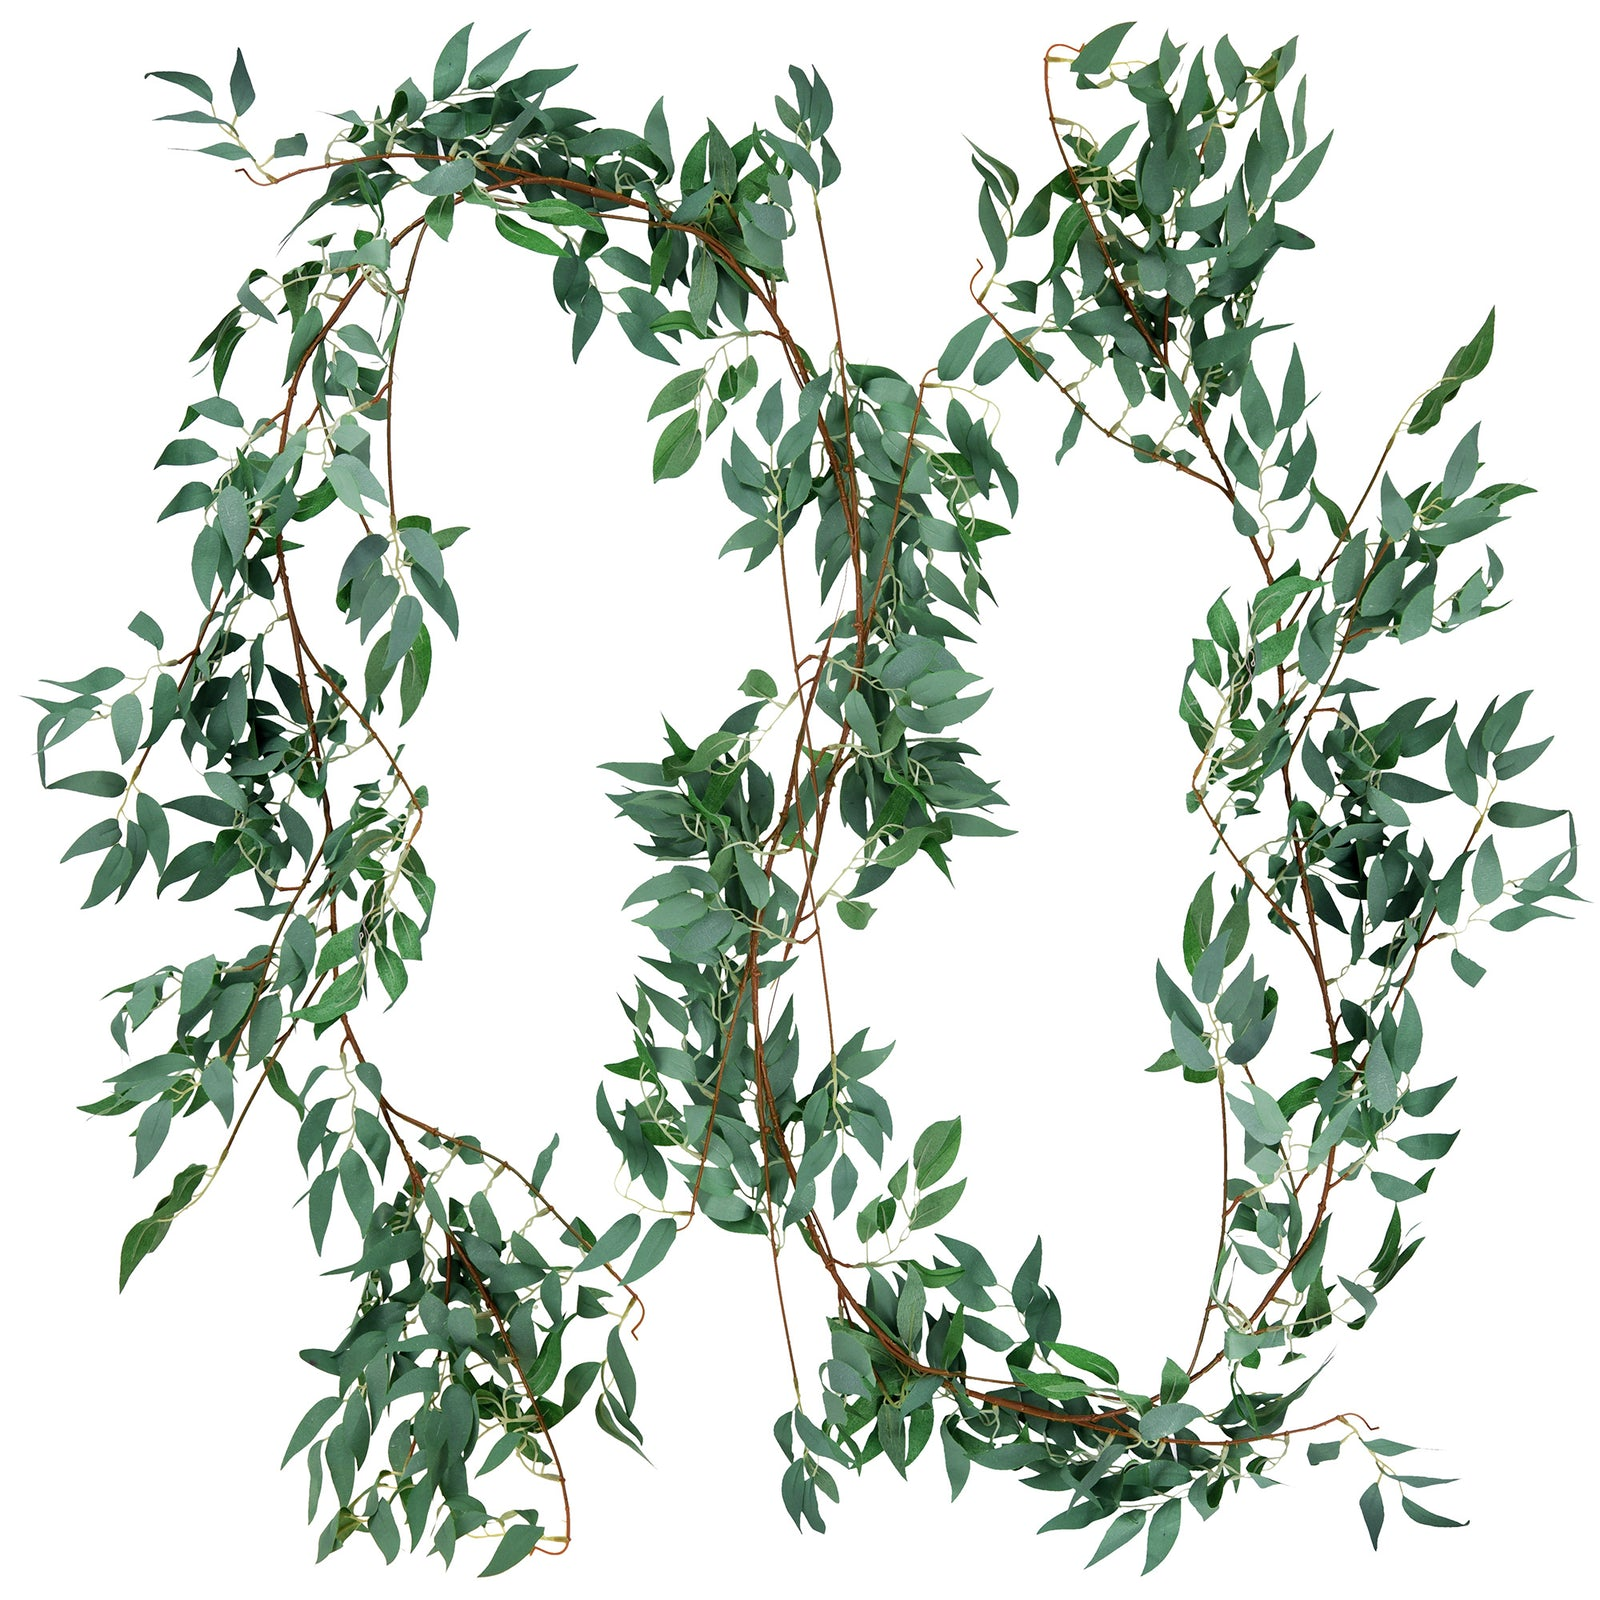 FiveSeasonStuff 2 Pcs Willow Leaves Garland Artificial Silk Leaves Vine Hanging Decorations for Home Wall Decoration, Wedding Decor, Bridal, Wreaths (foggy green)